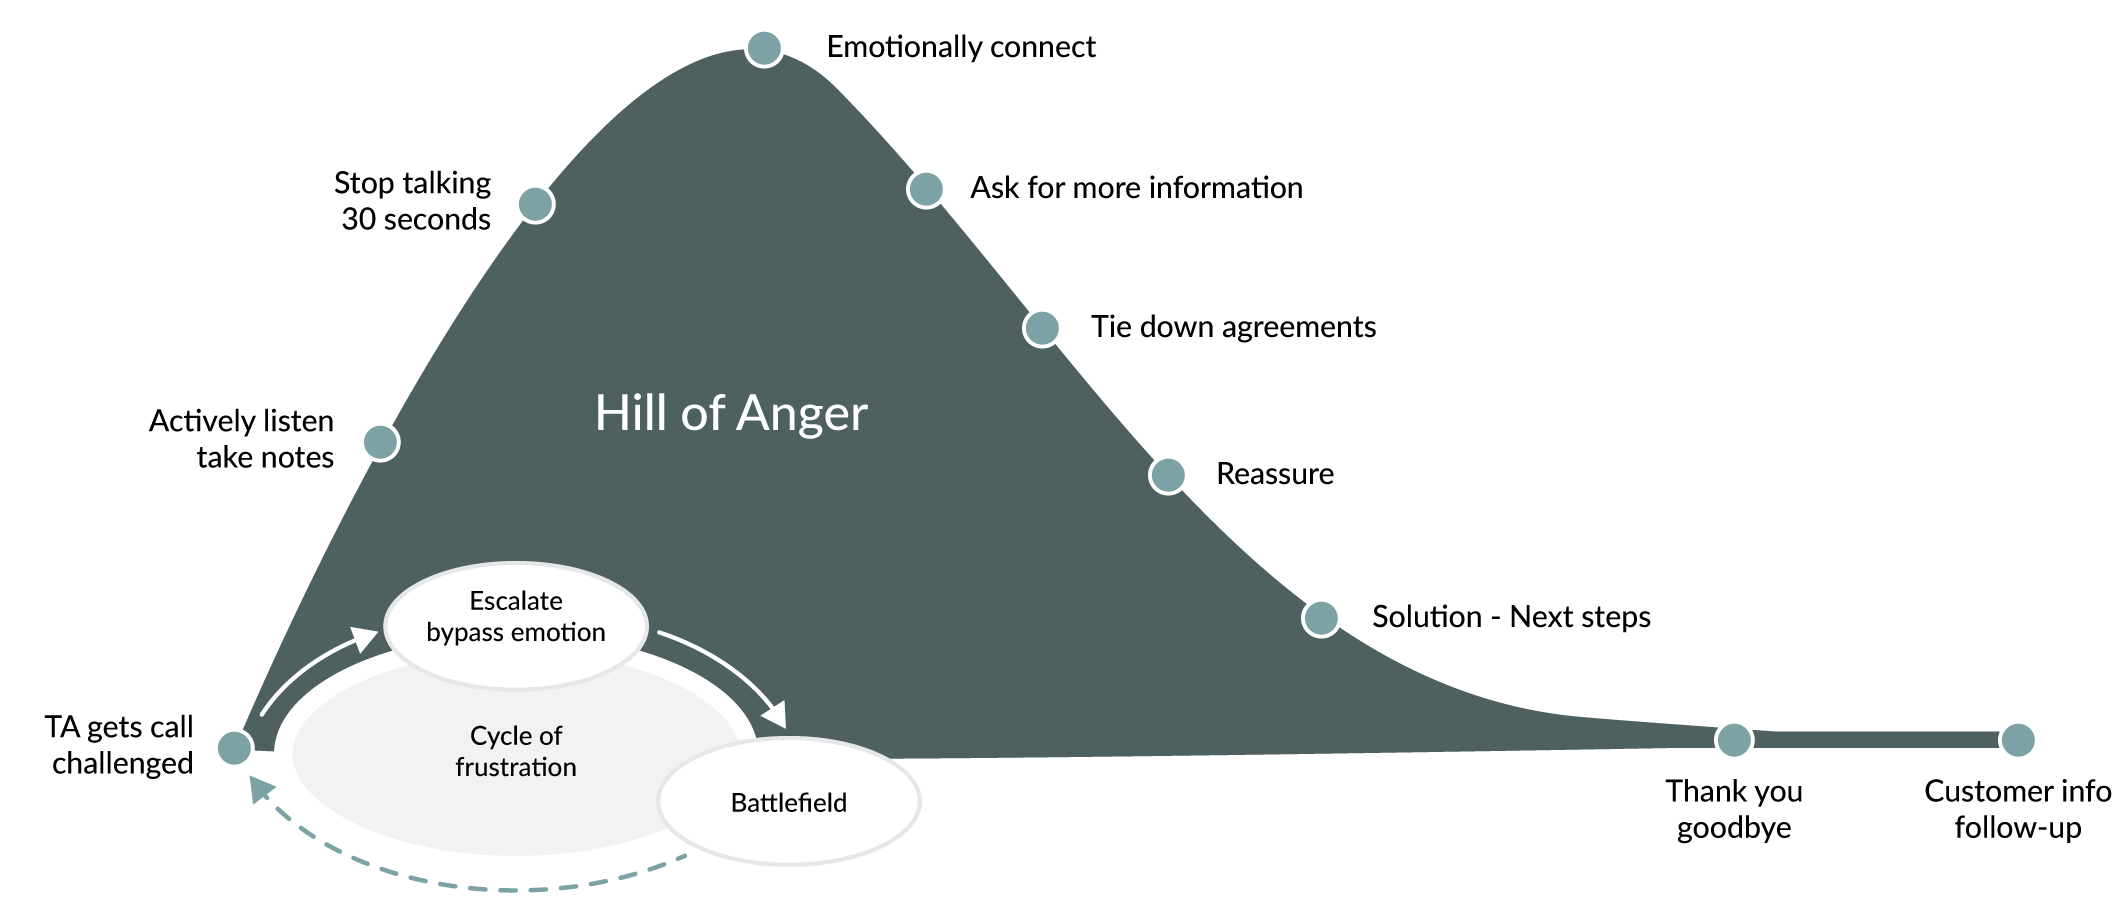 Hill of Anger